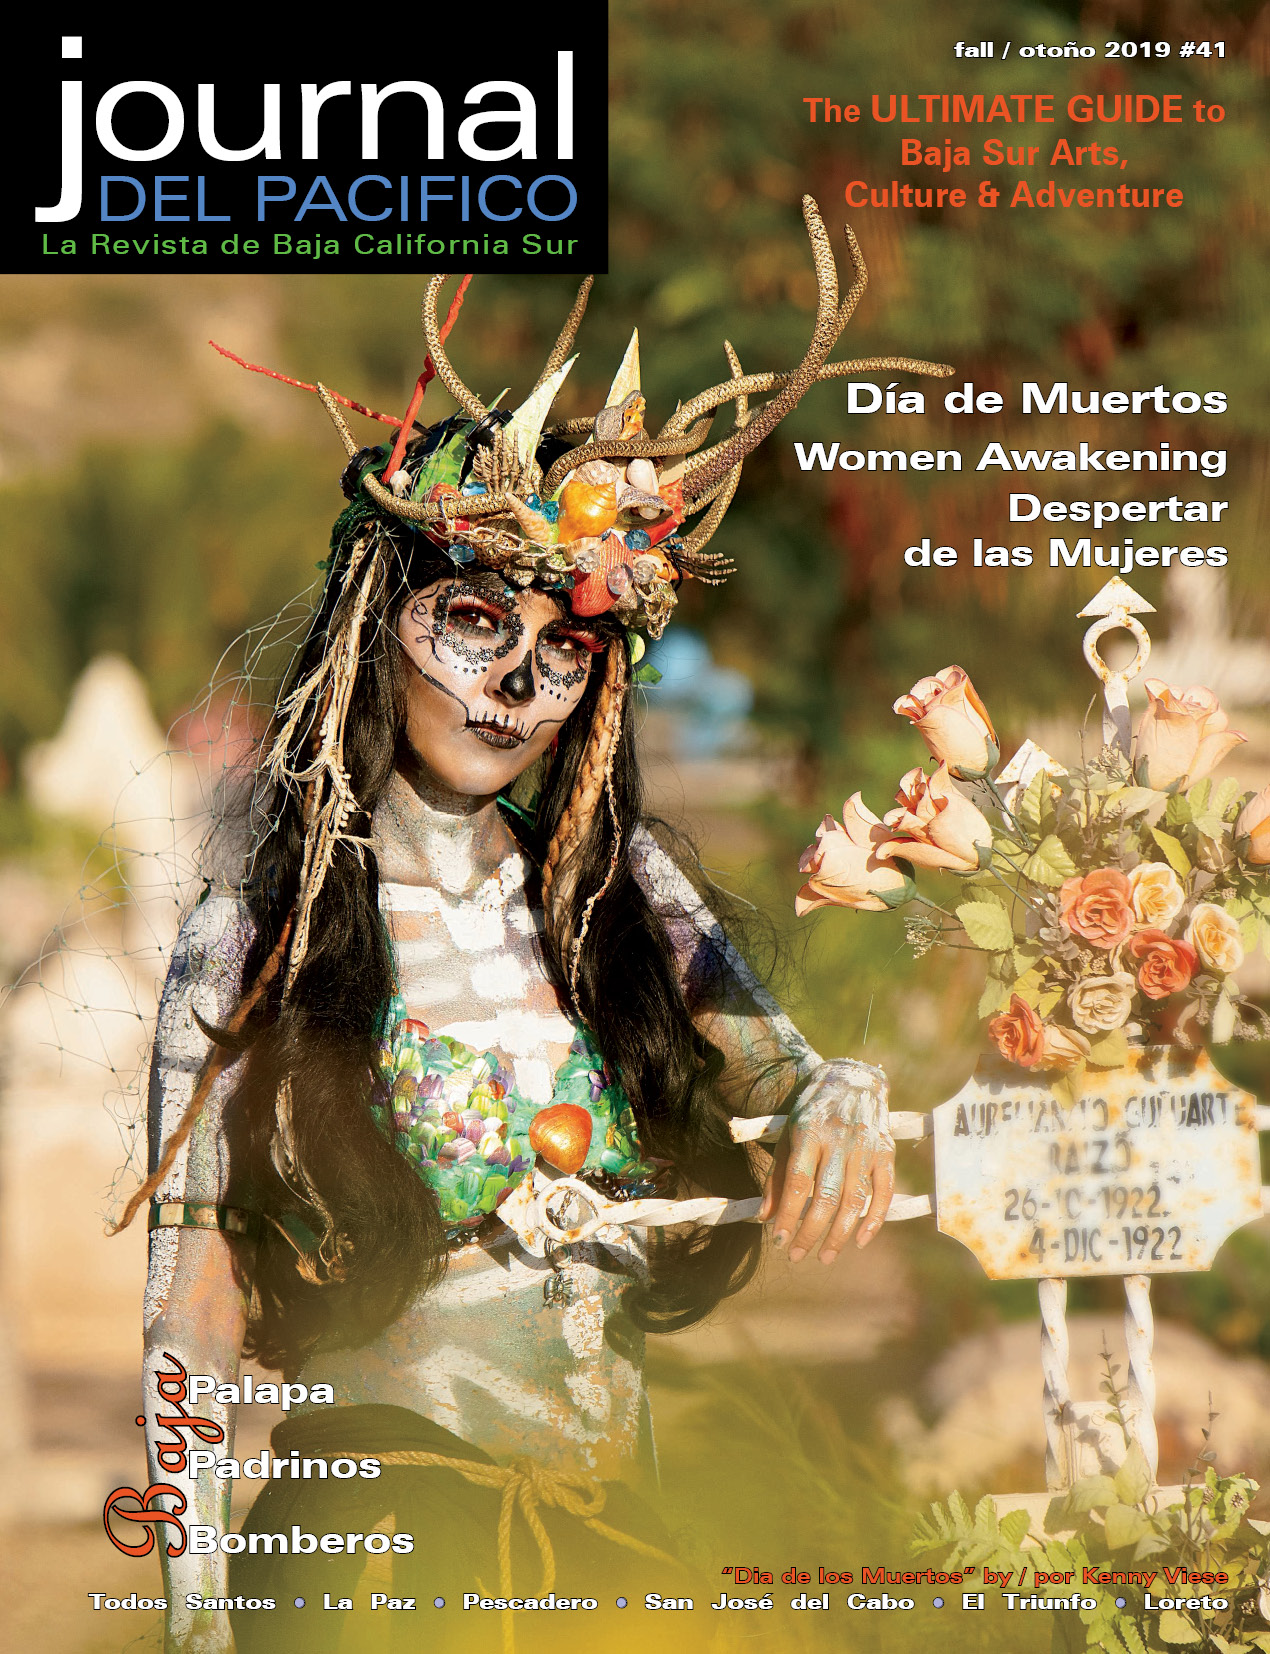 Fall/Otoño 2019 Issue of Journal del Pacifico